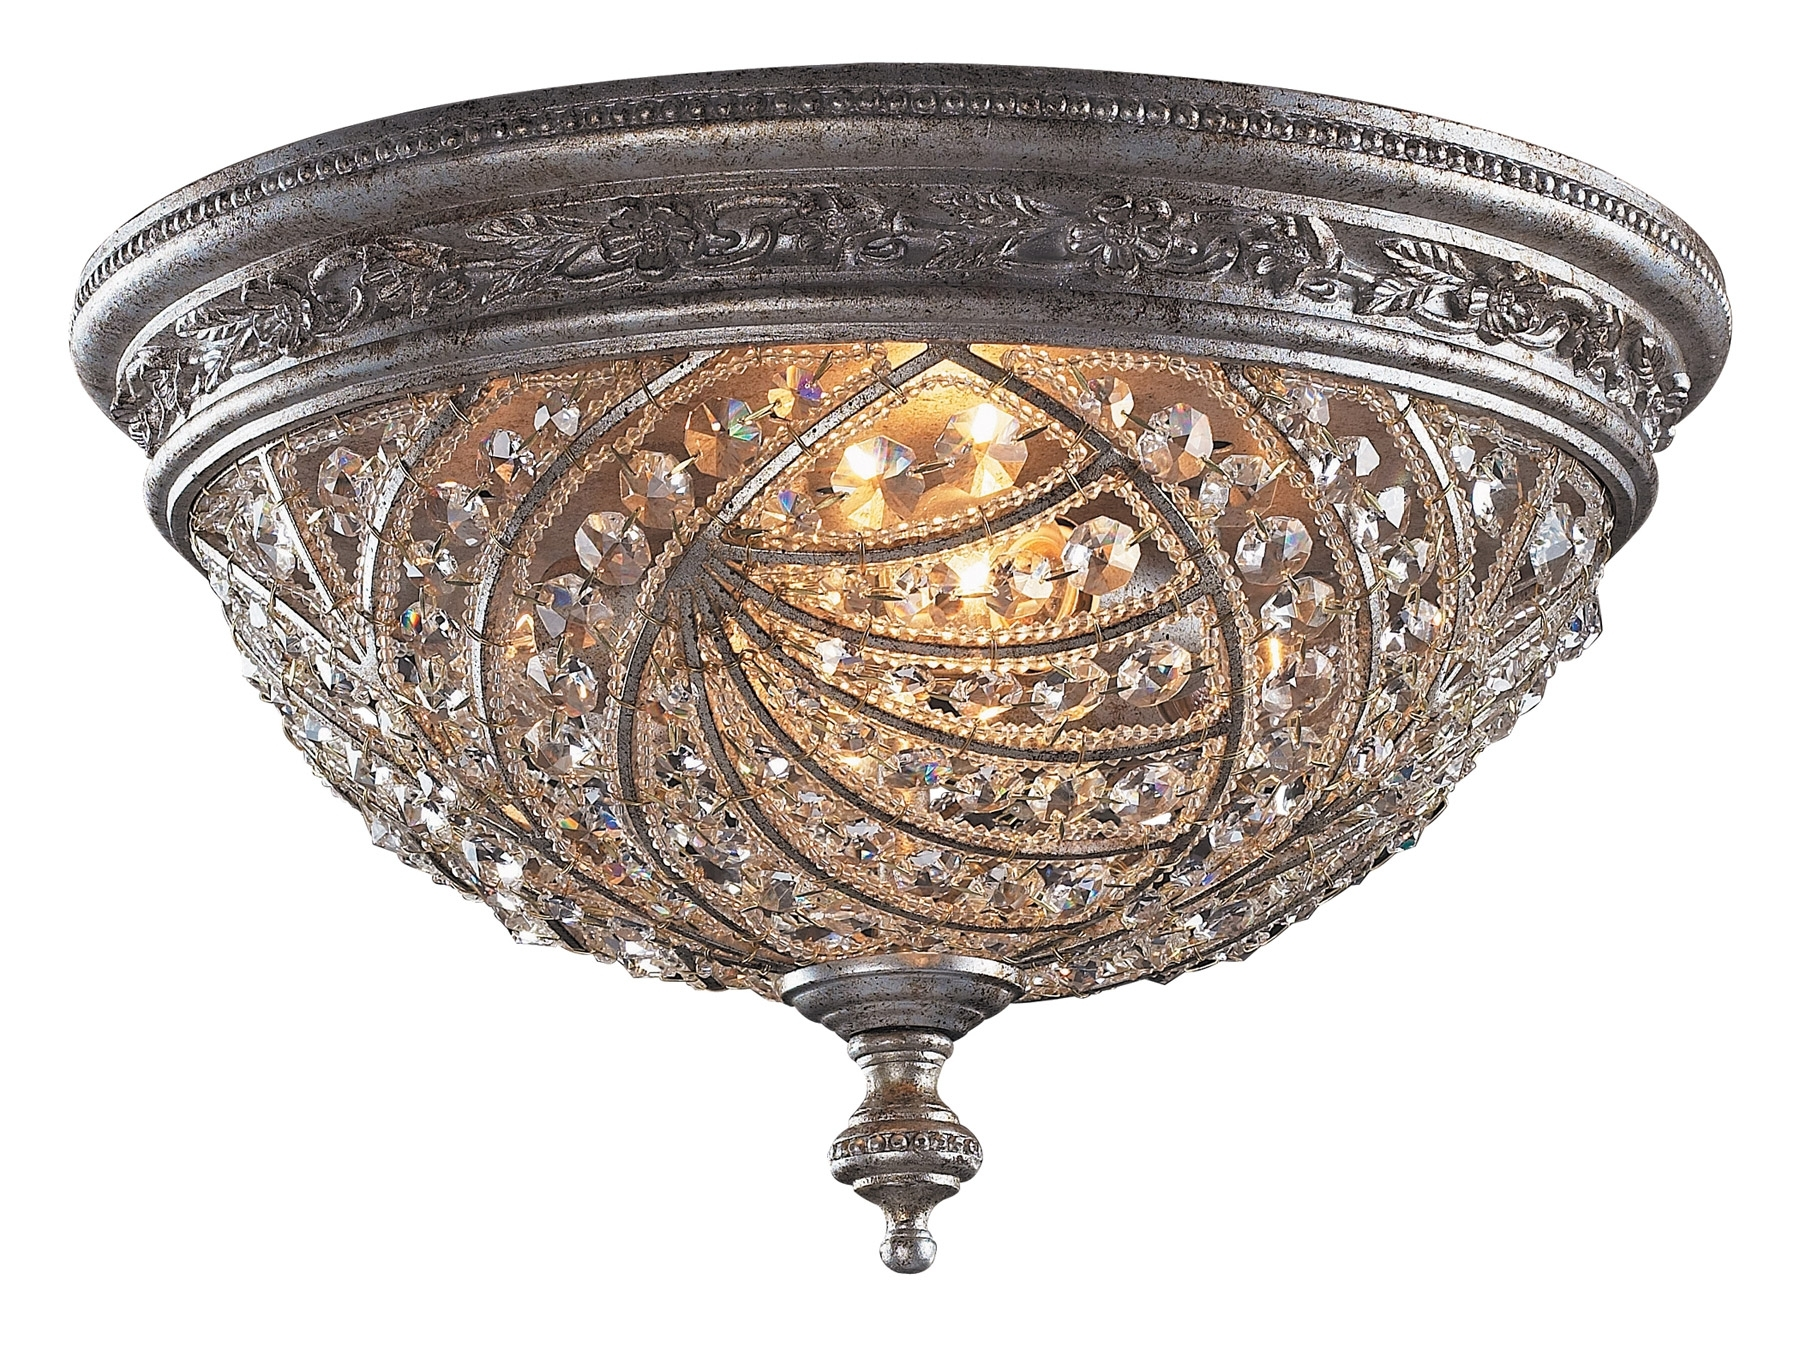 Lighting 6232/4 Crystal Renaissance Flush Mount Ceiling Fixture Regarding Latest Flush Chandelier Ceiling Lights (View 18 of 20)